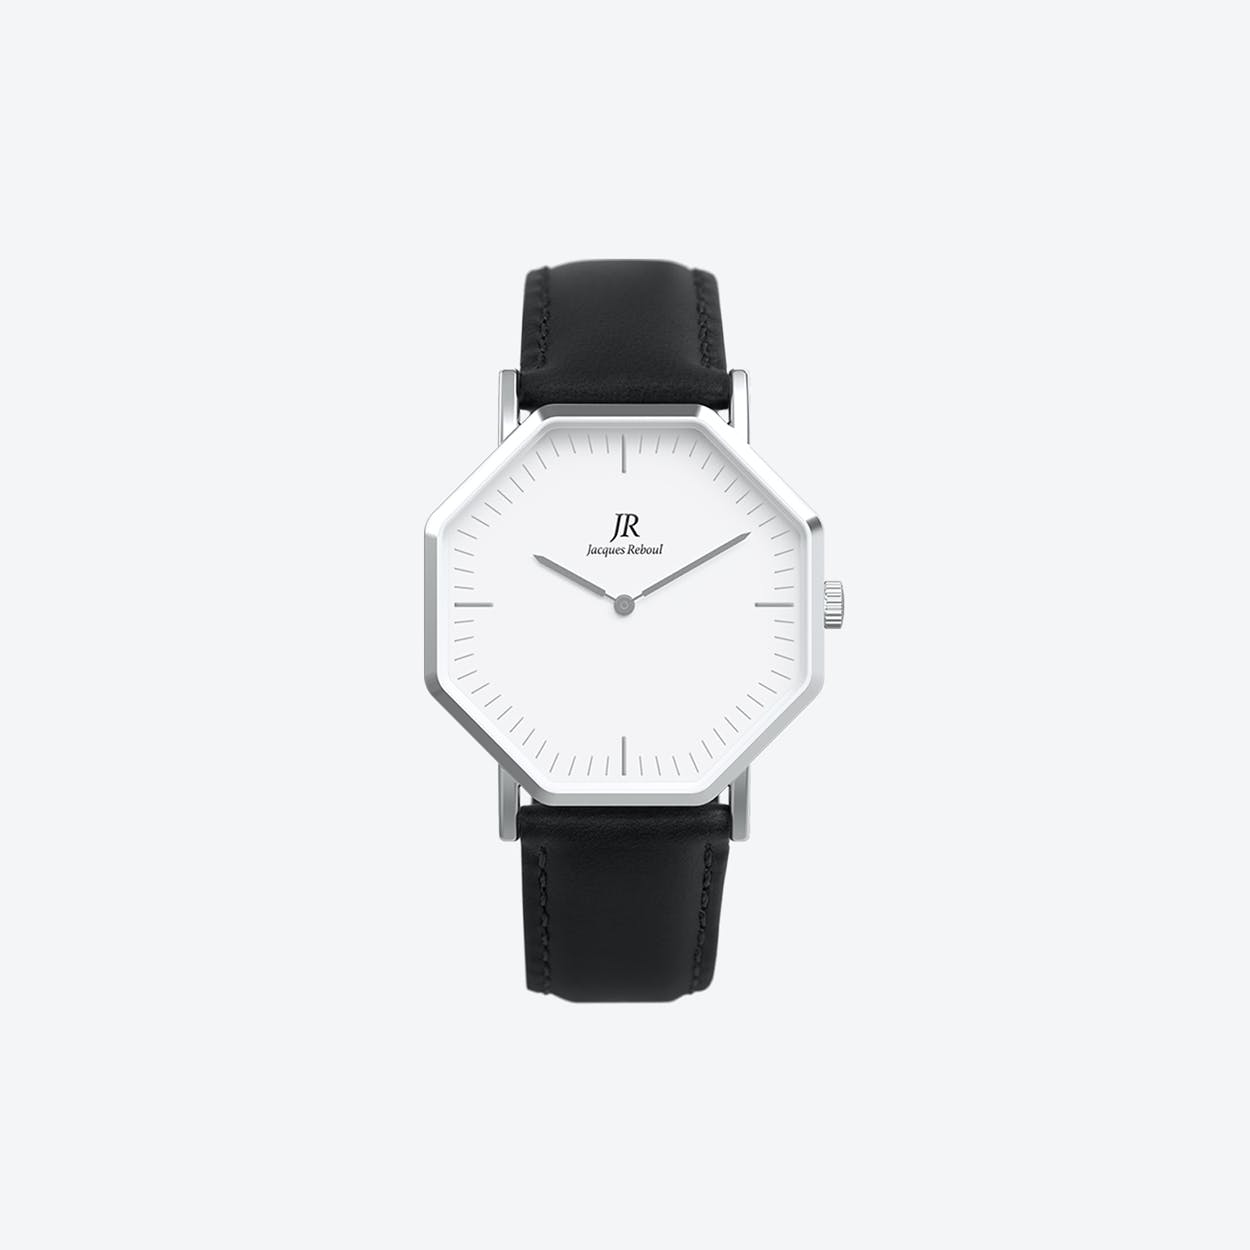 Premier Classic Silver Hexagonal Watch with Black Leather Strap 41mm